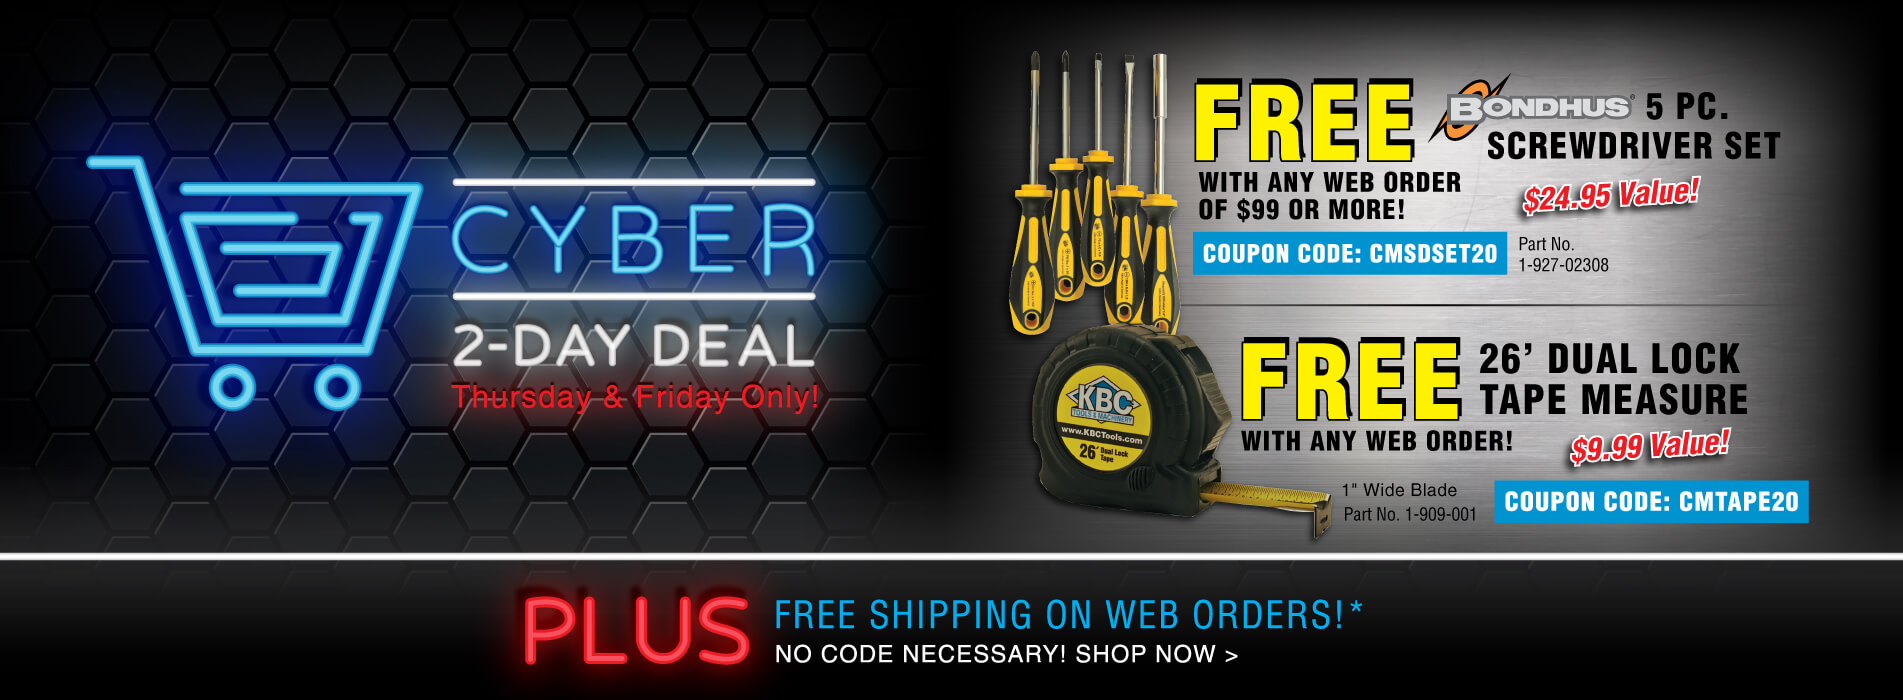 Free Bondhus 5 Pc Screw Driver Set with Order of $99 or more